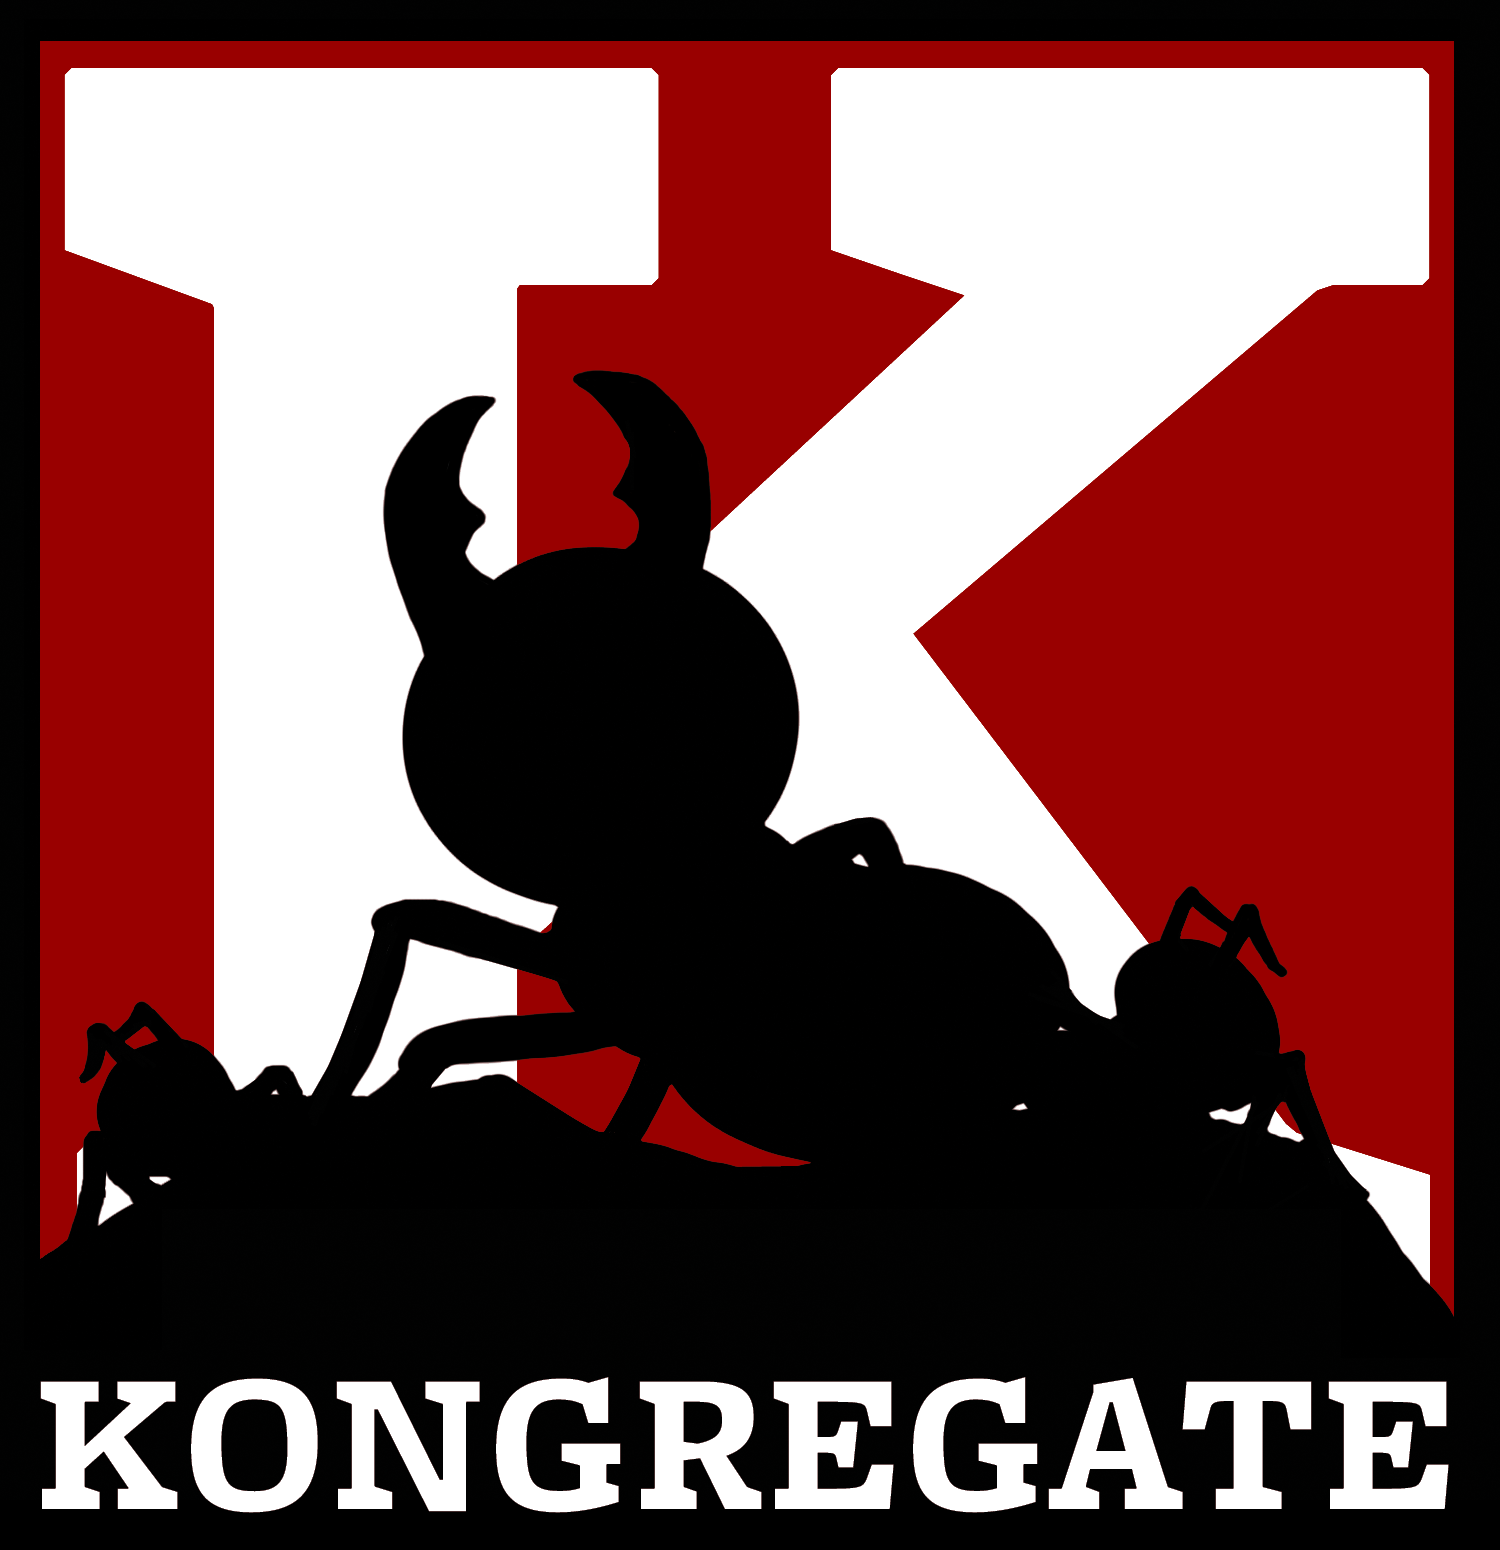 kongregate anthill